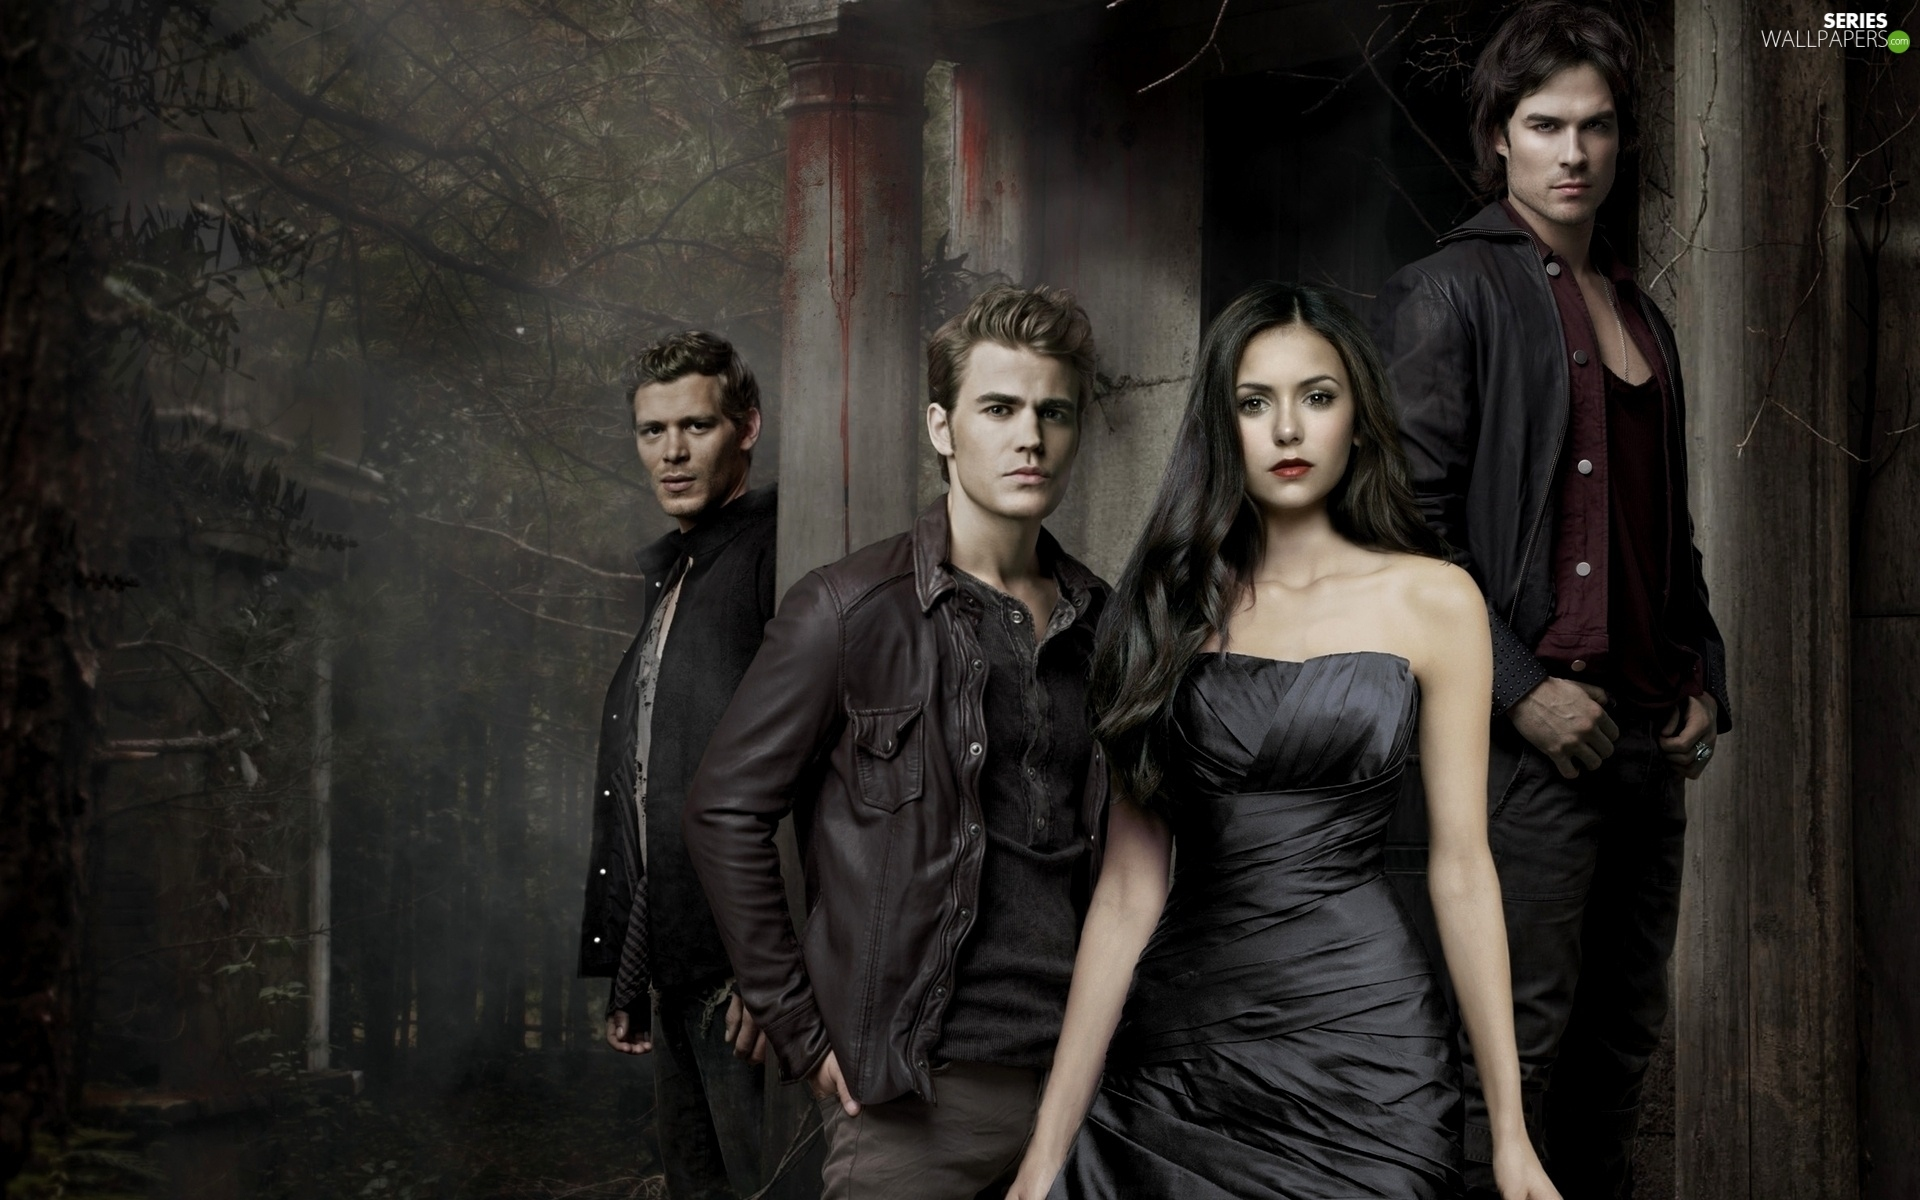 Joseph Morgan, The Vampire Diaries, Paul Wesley, ian somerhalder, Nina Dobrev, The Vampire Diaries